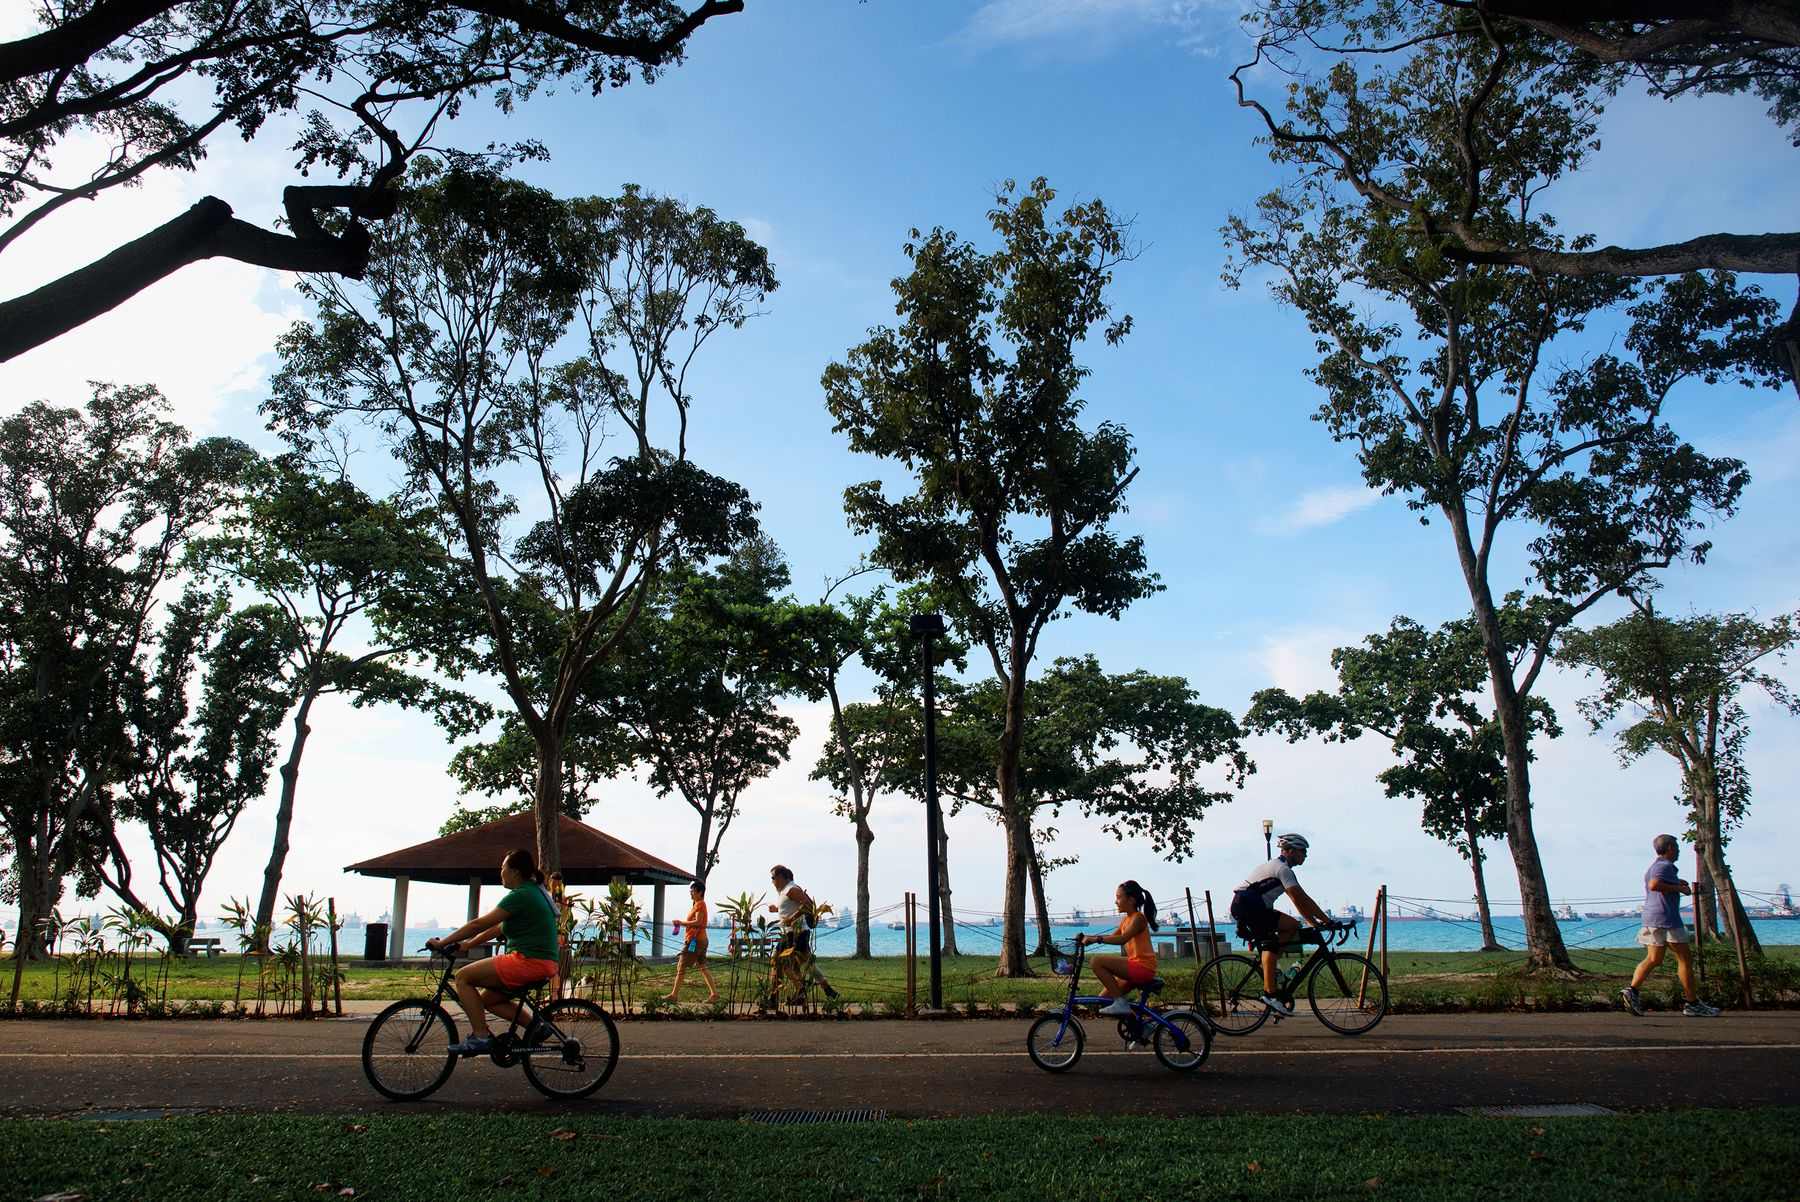 cycling in east coast park